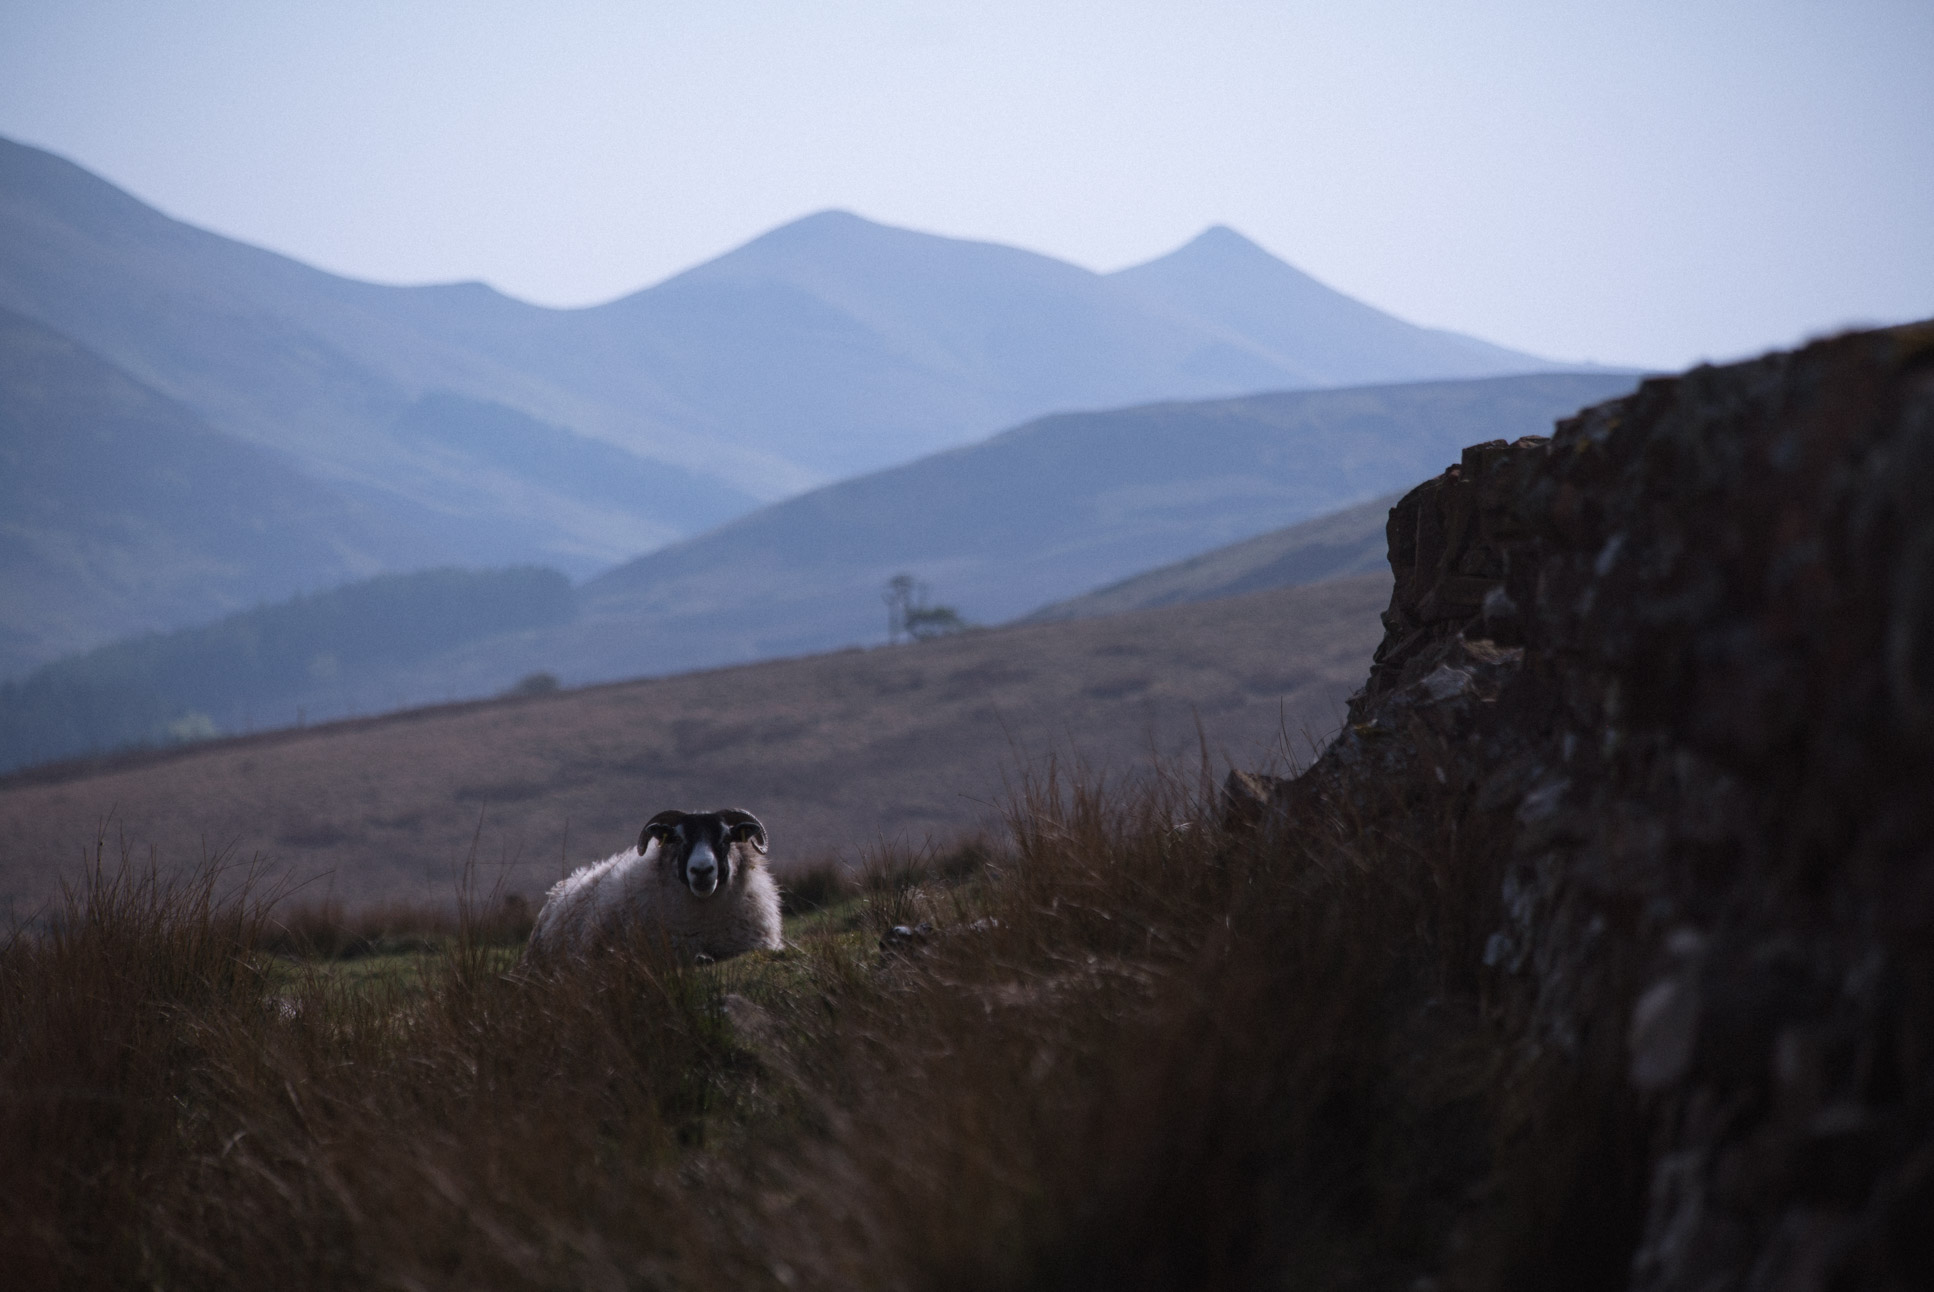 One of the thousands of sheep on Pendland Hills